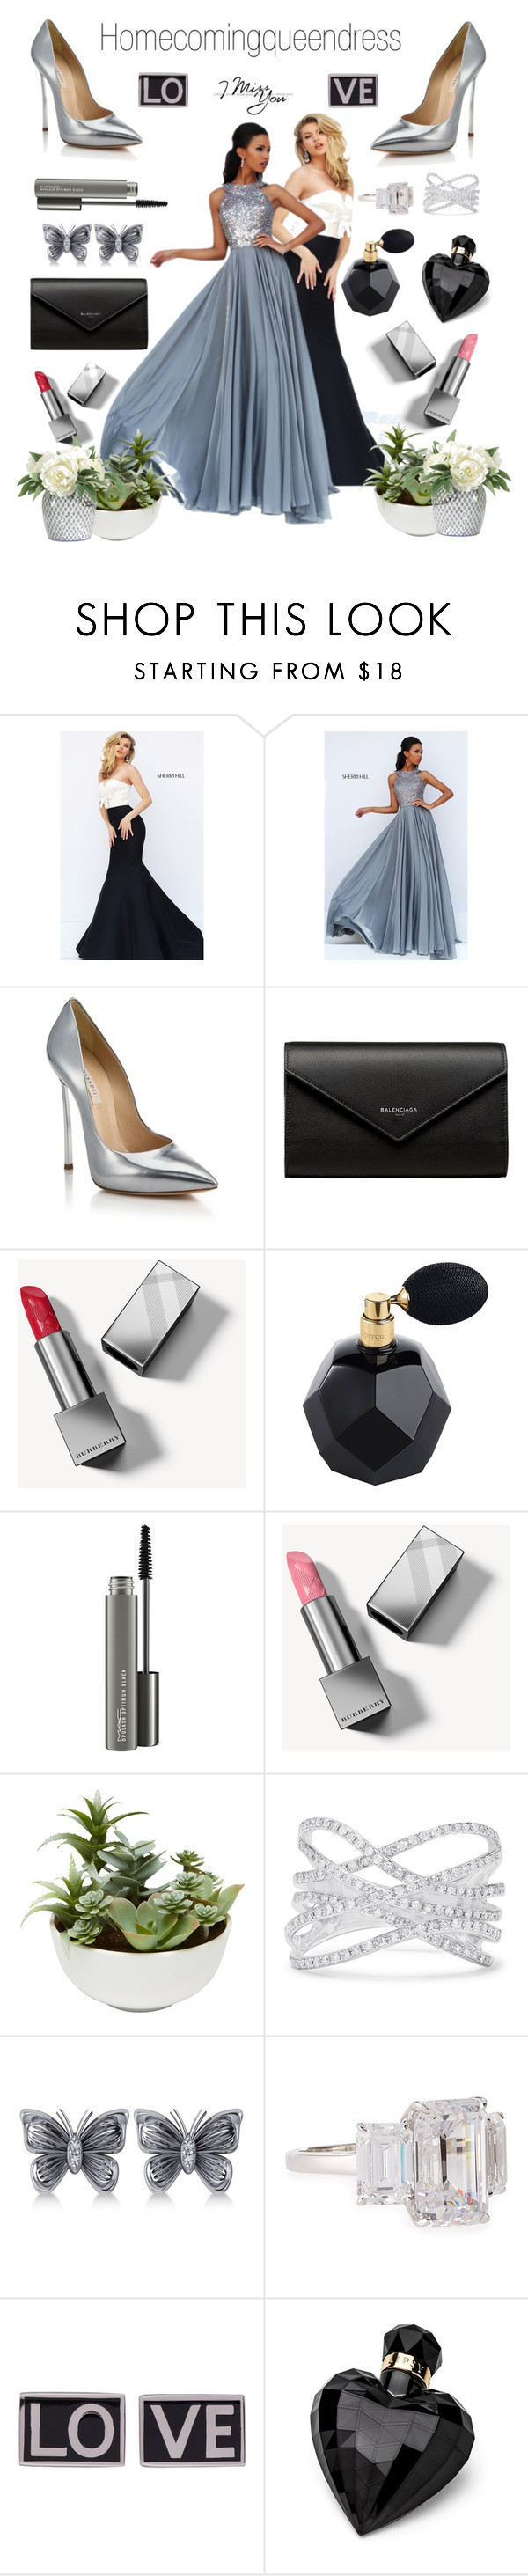 """Homecomingqueendress"" by sneky ❤ liked on Polyvore featuring Sherri Hill, Casadei, Balenciaga, Burberry, MAC Cosmetics, Effy Jewelry, Allurez, Fantasia by DeSerio, Givenchy and Lipsy"